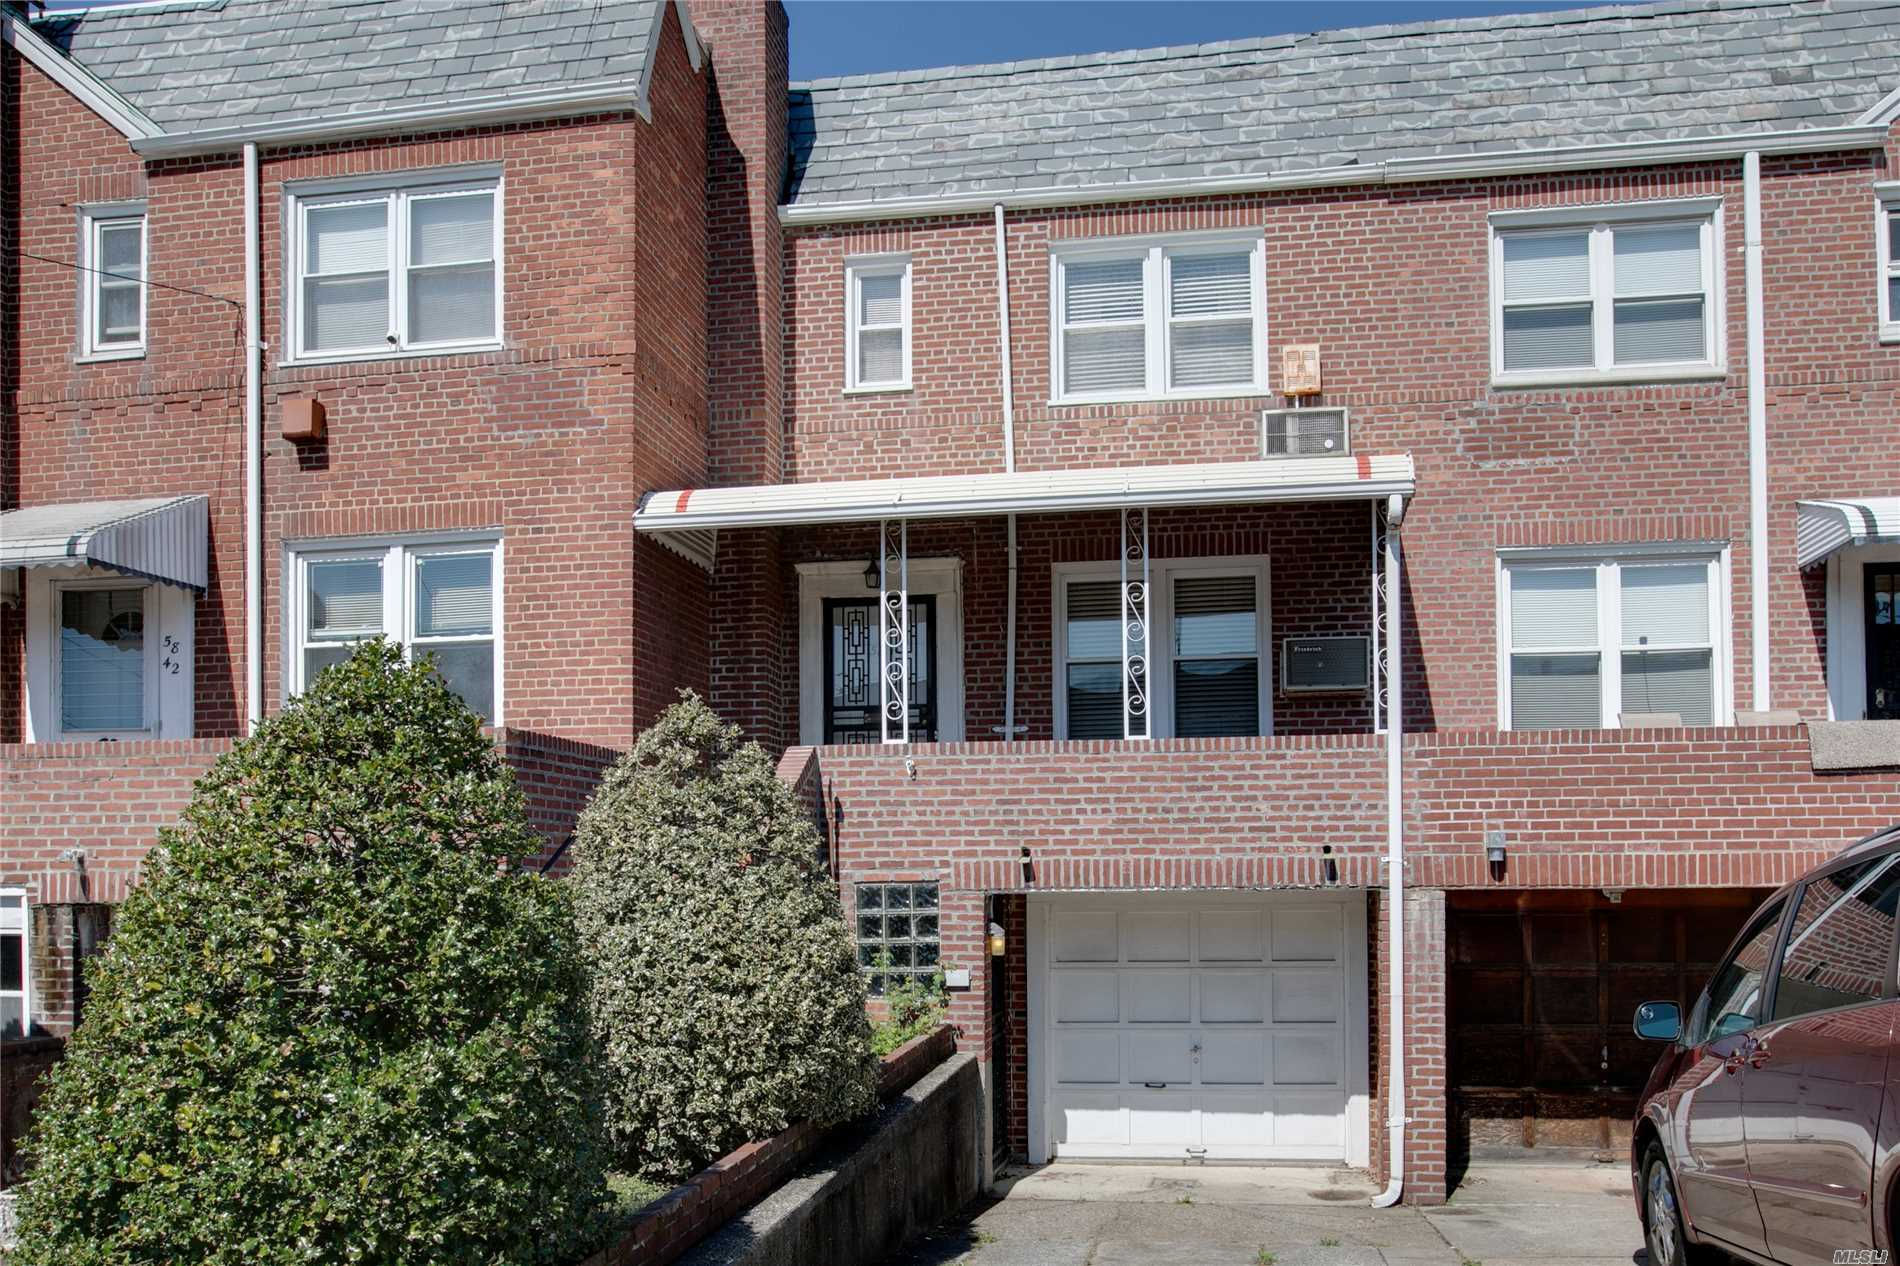 Attached Brick Townhouse Colonial in Queens-Borough Hill Section of Flushing. Lovingly Maintained by the Original Owners! The 1st Floor Offers a Foyer, LR, FDR, EIK. The 2nd Floor has 3 Bedrooms and a Full Bath. Finished Basement with OSE, Den, 1/2 Bath, Boiler and Laundry plus Attached Garage Oak Floors New Gas Boiler with Separate Water Tank. 4 Wall A/C Units, Front Patio with Eastern Exposure. Sweet Rear Yard. Short distance to Main Street and Transportation.